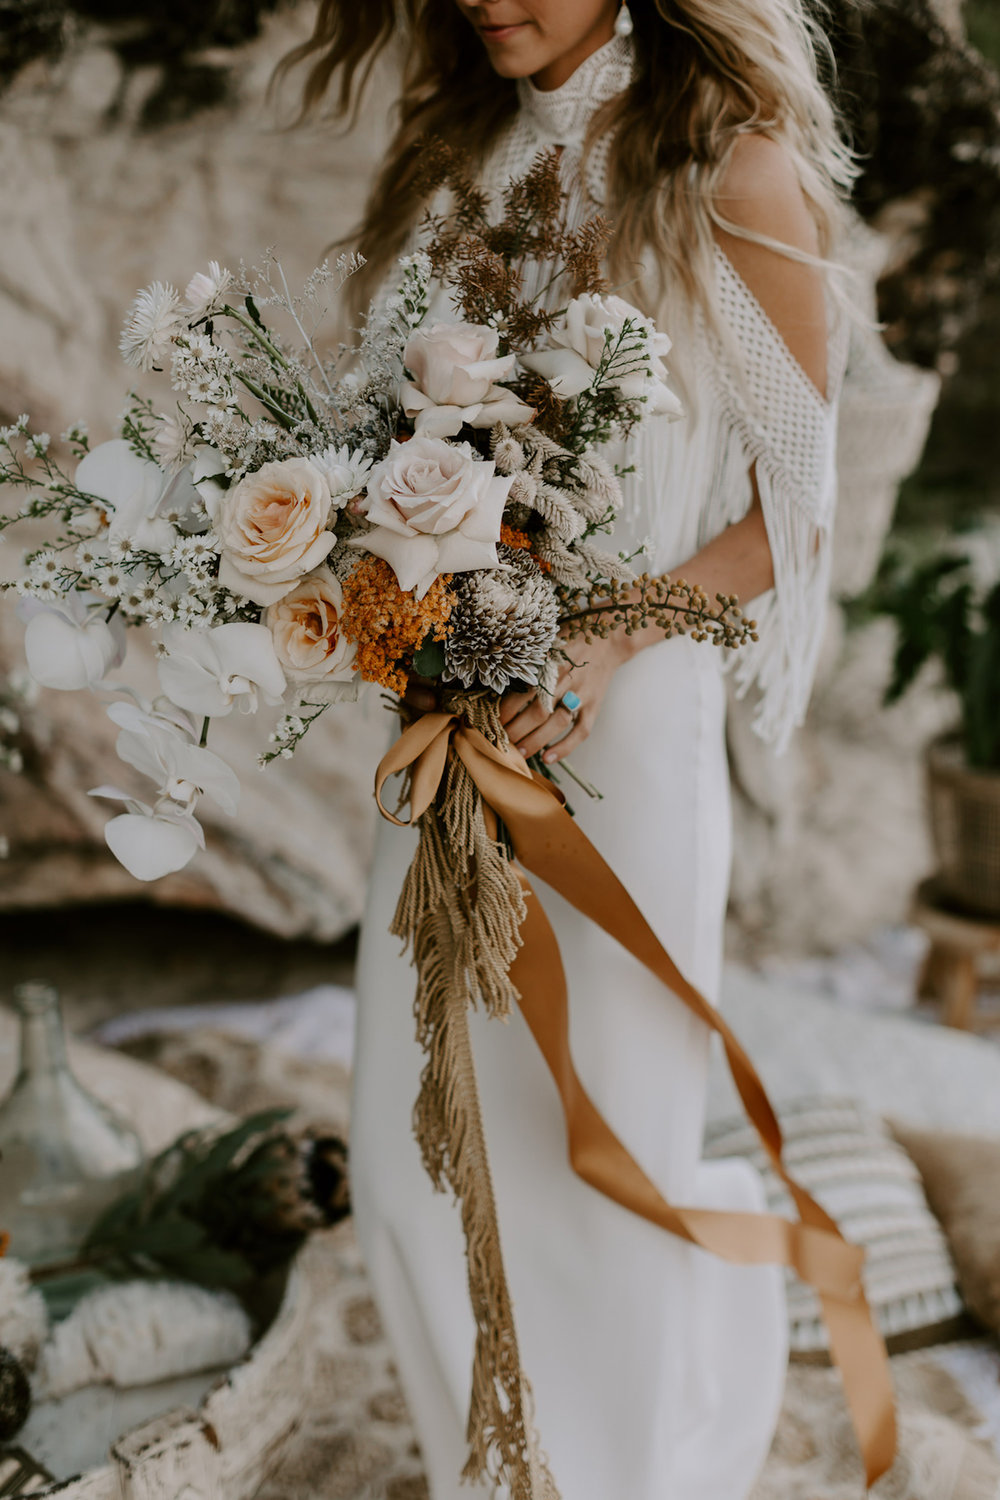 Textural floral styling ideas inspiration7.jpg